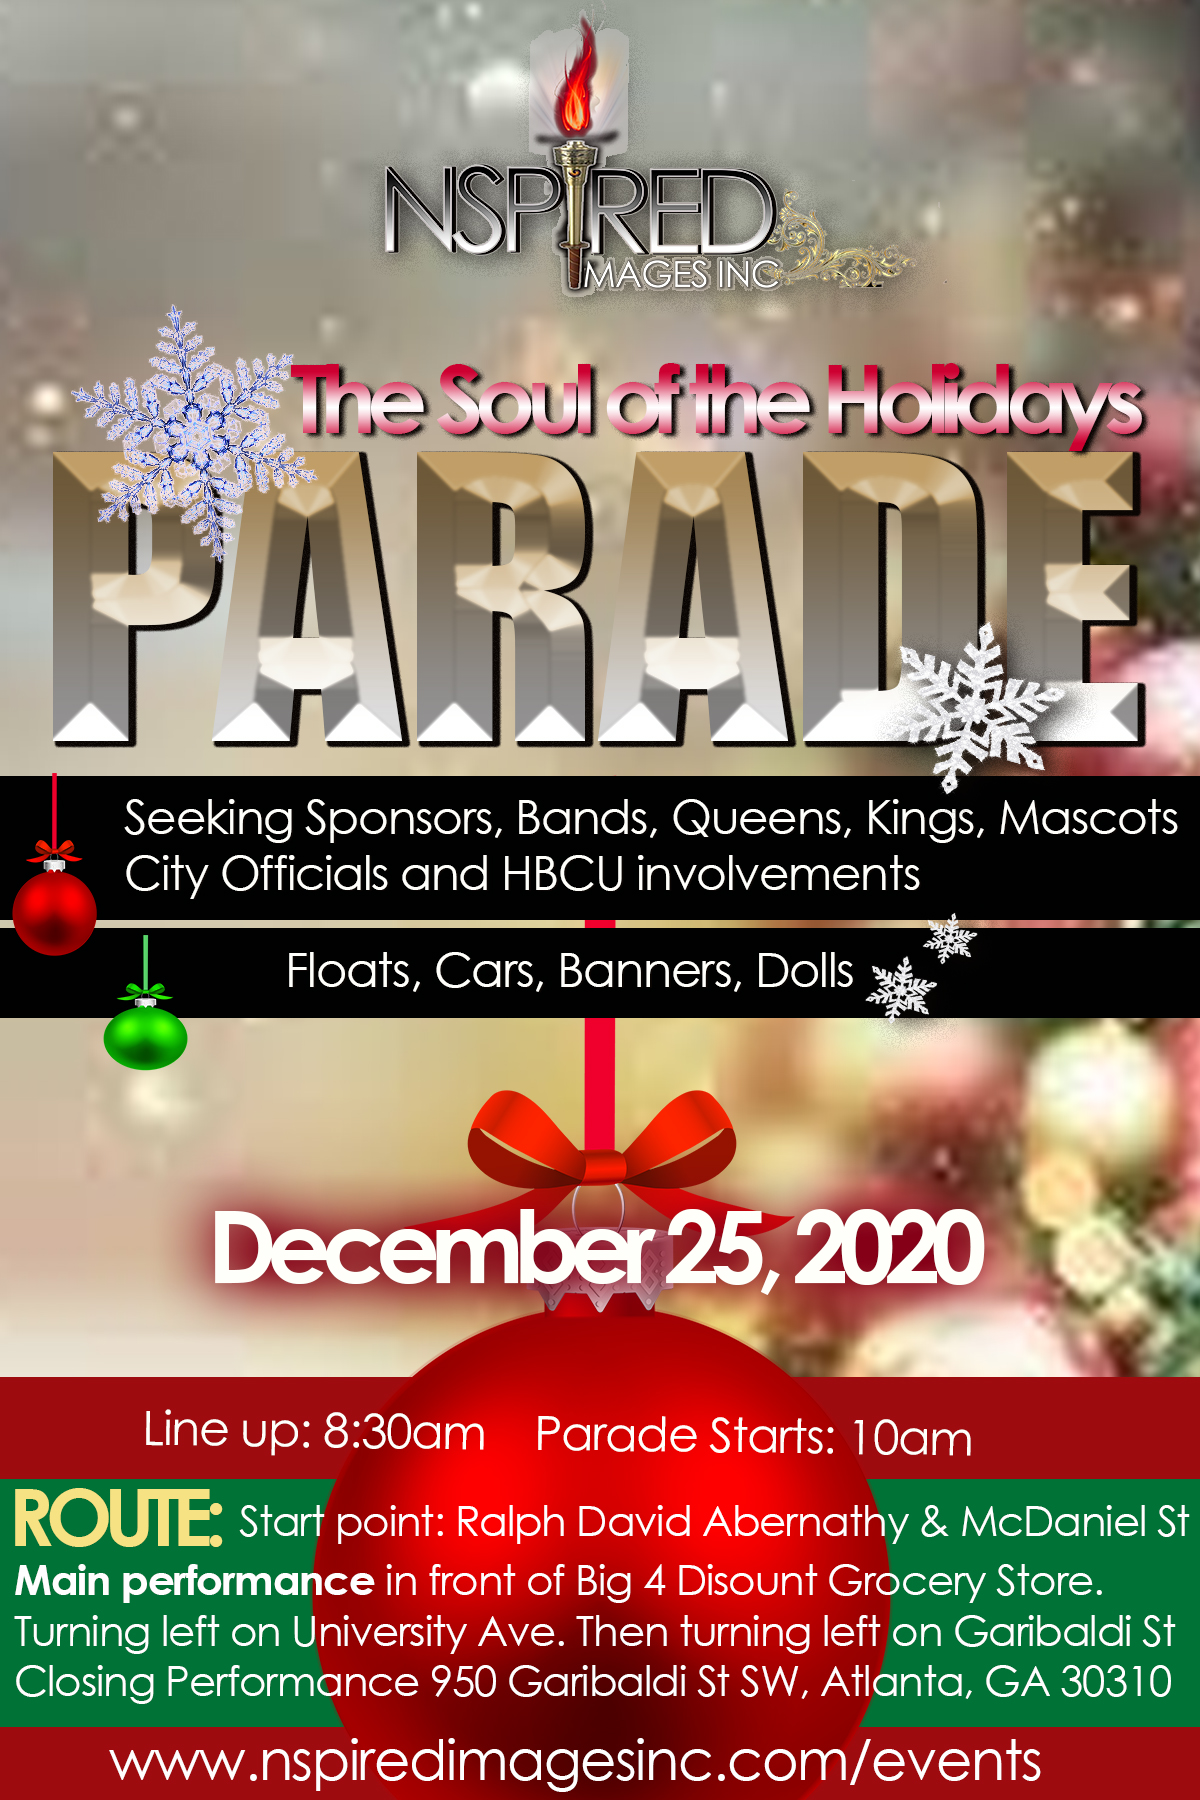 christmasparade